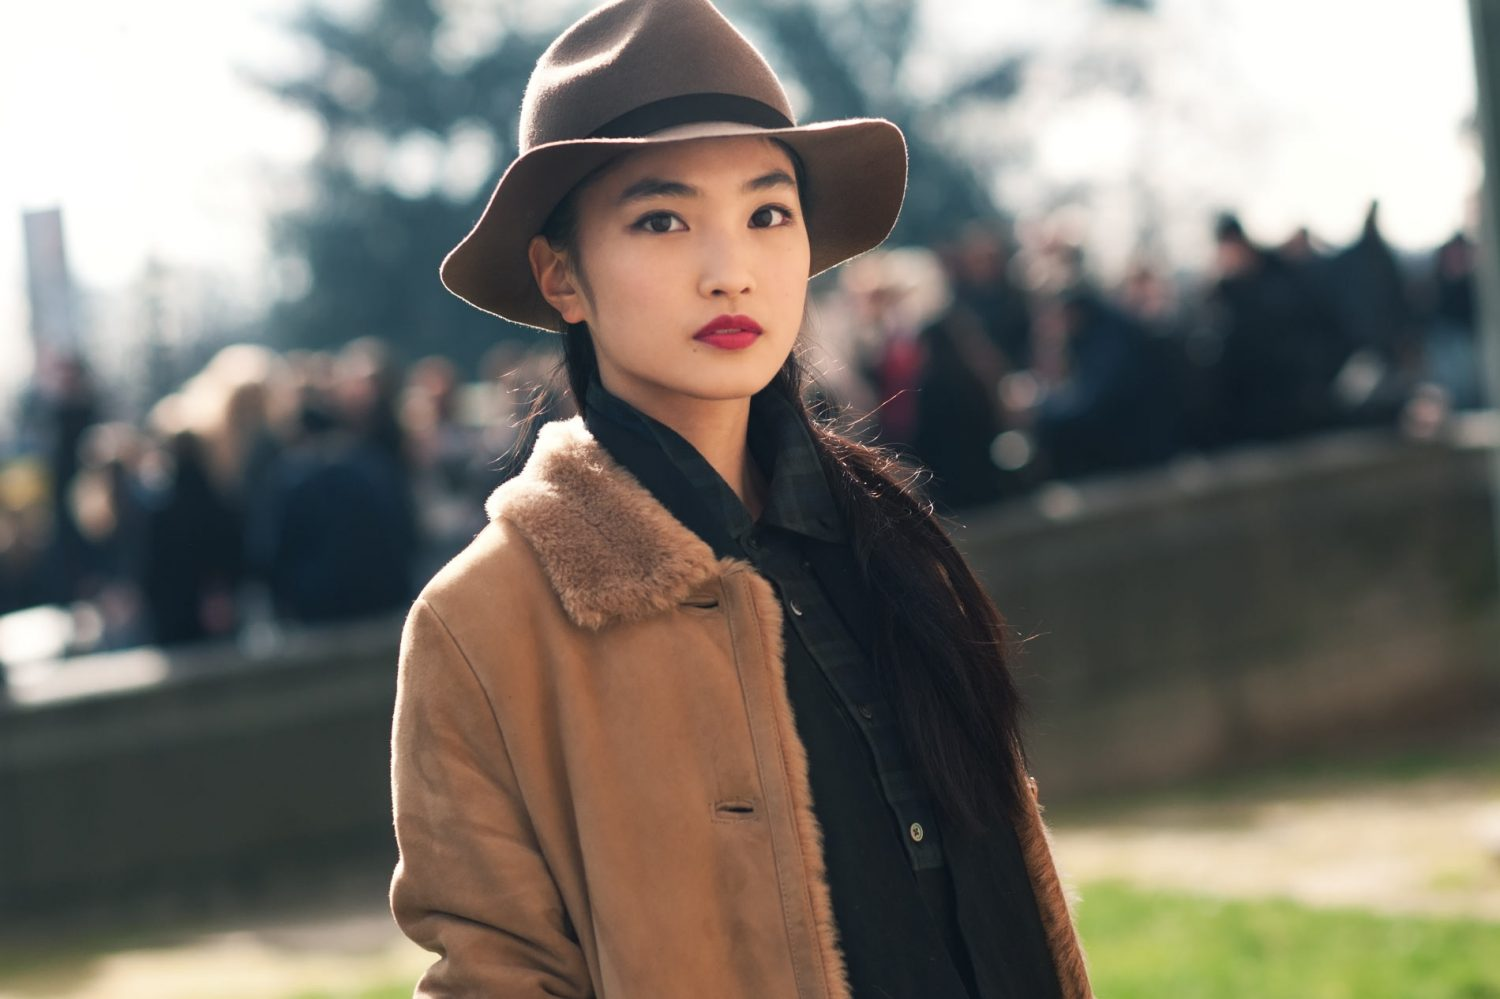 Kiyo Matsumoto at Paris Fashion Week Fall/Winter 2014